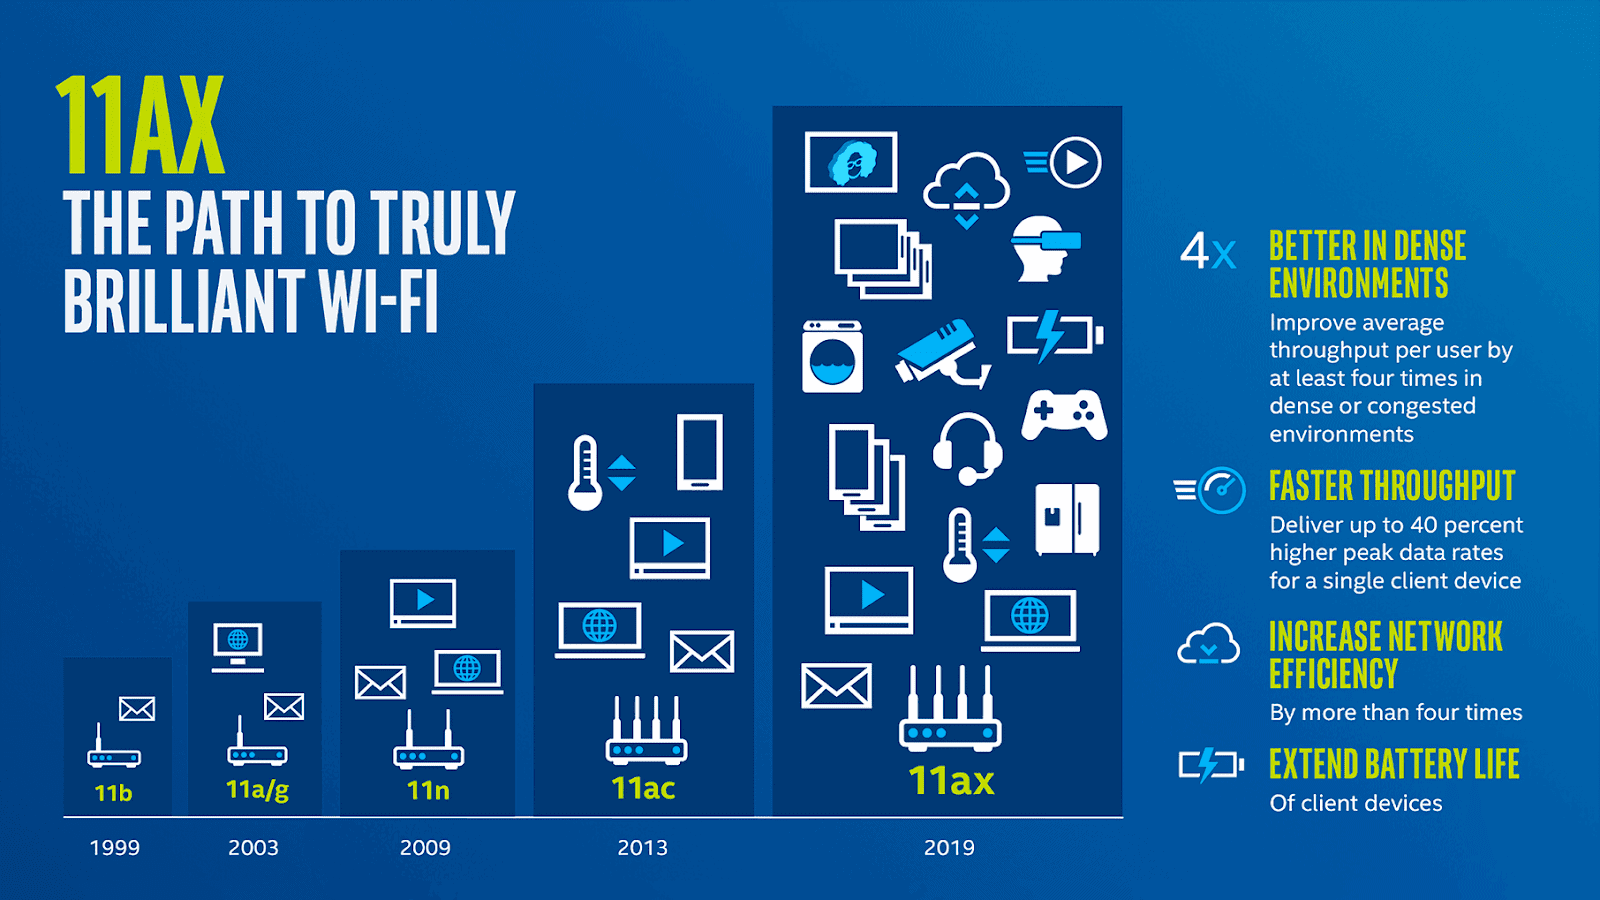 Infographic helping explain WiFi standard